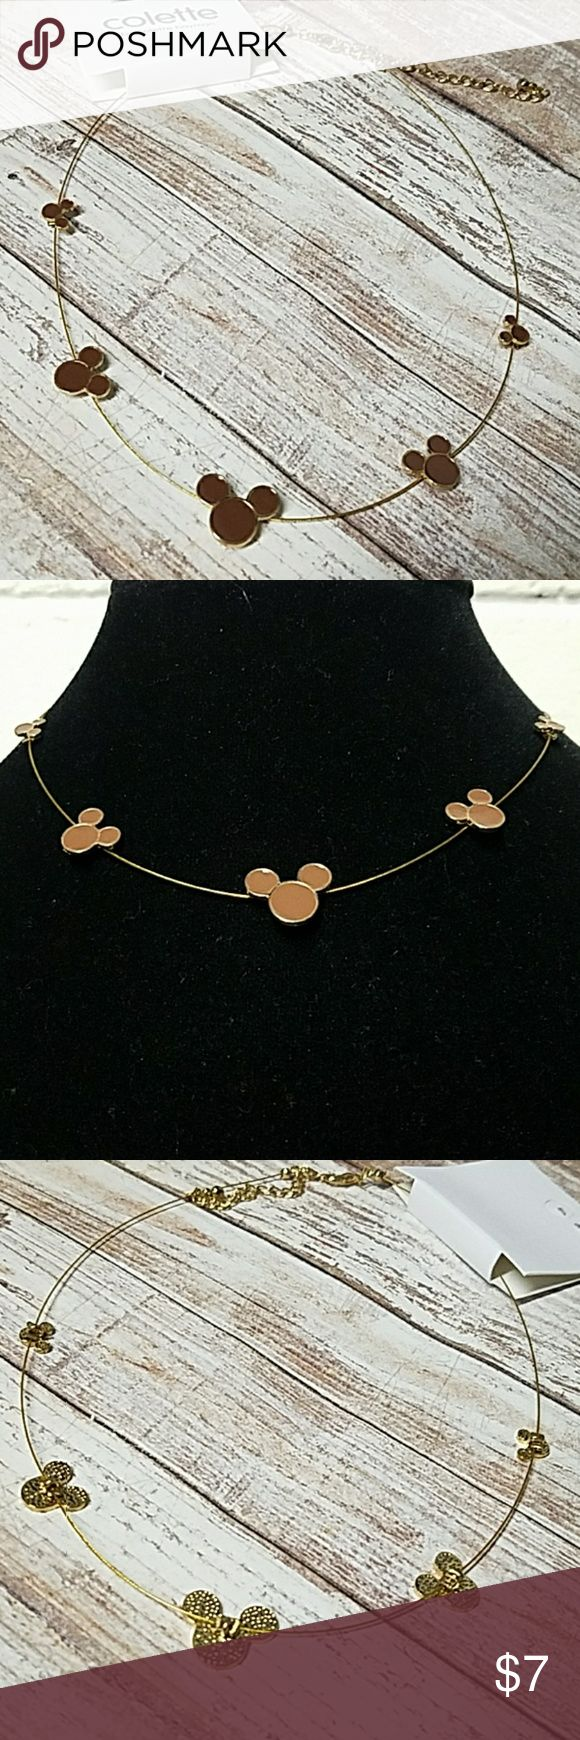 """Gold Mouse Ears Collar Necklace 14"""" Long w/3"""" extender chain Gold Necklace. 5 Gold mouse ears w/brown enamel coating accent this necklace. Lobster clasp closure. Item#N907 *ALL JEWELRY IS NWT/NWOT/UNUSED VINTAGE* 25% OFF BUNDLES OF 3 OR MORE ITEMS! **REASONABLE OFFERS ACCEPTED** BUY WITH CONFIDENCE~TOP 10% SELLER,FAST SHIPPER, 5 STAR RATING, FREE GIFT w/MOST ORDERS! Colette Hayman Jewelry Necklaces"""